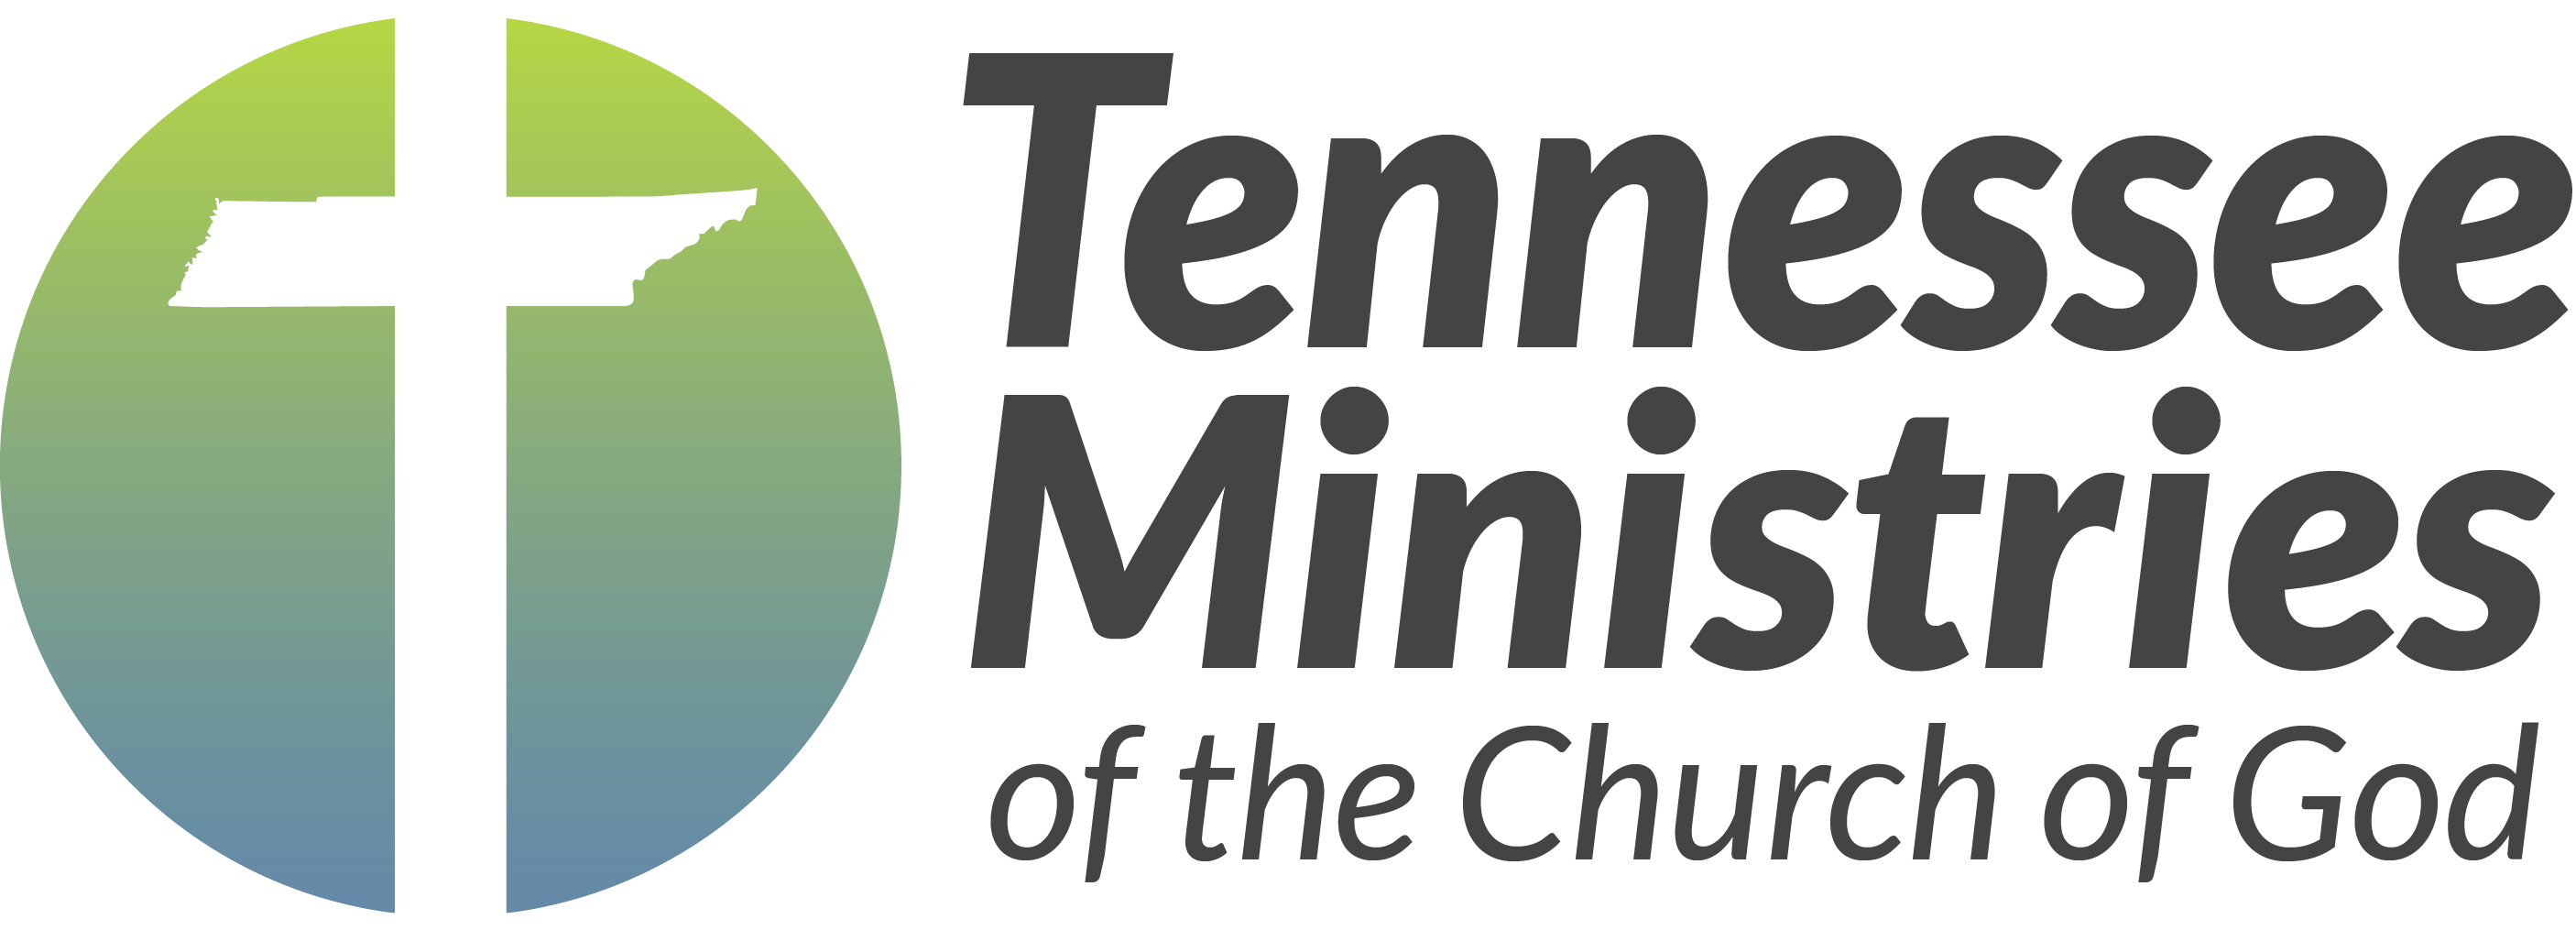 Tennessee State Ministries